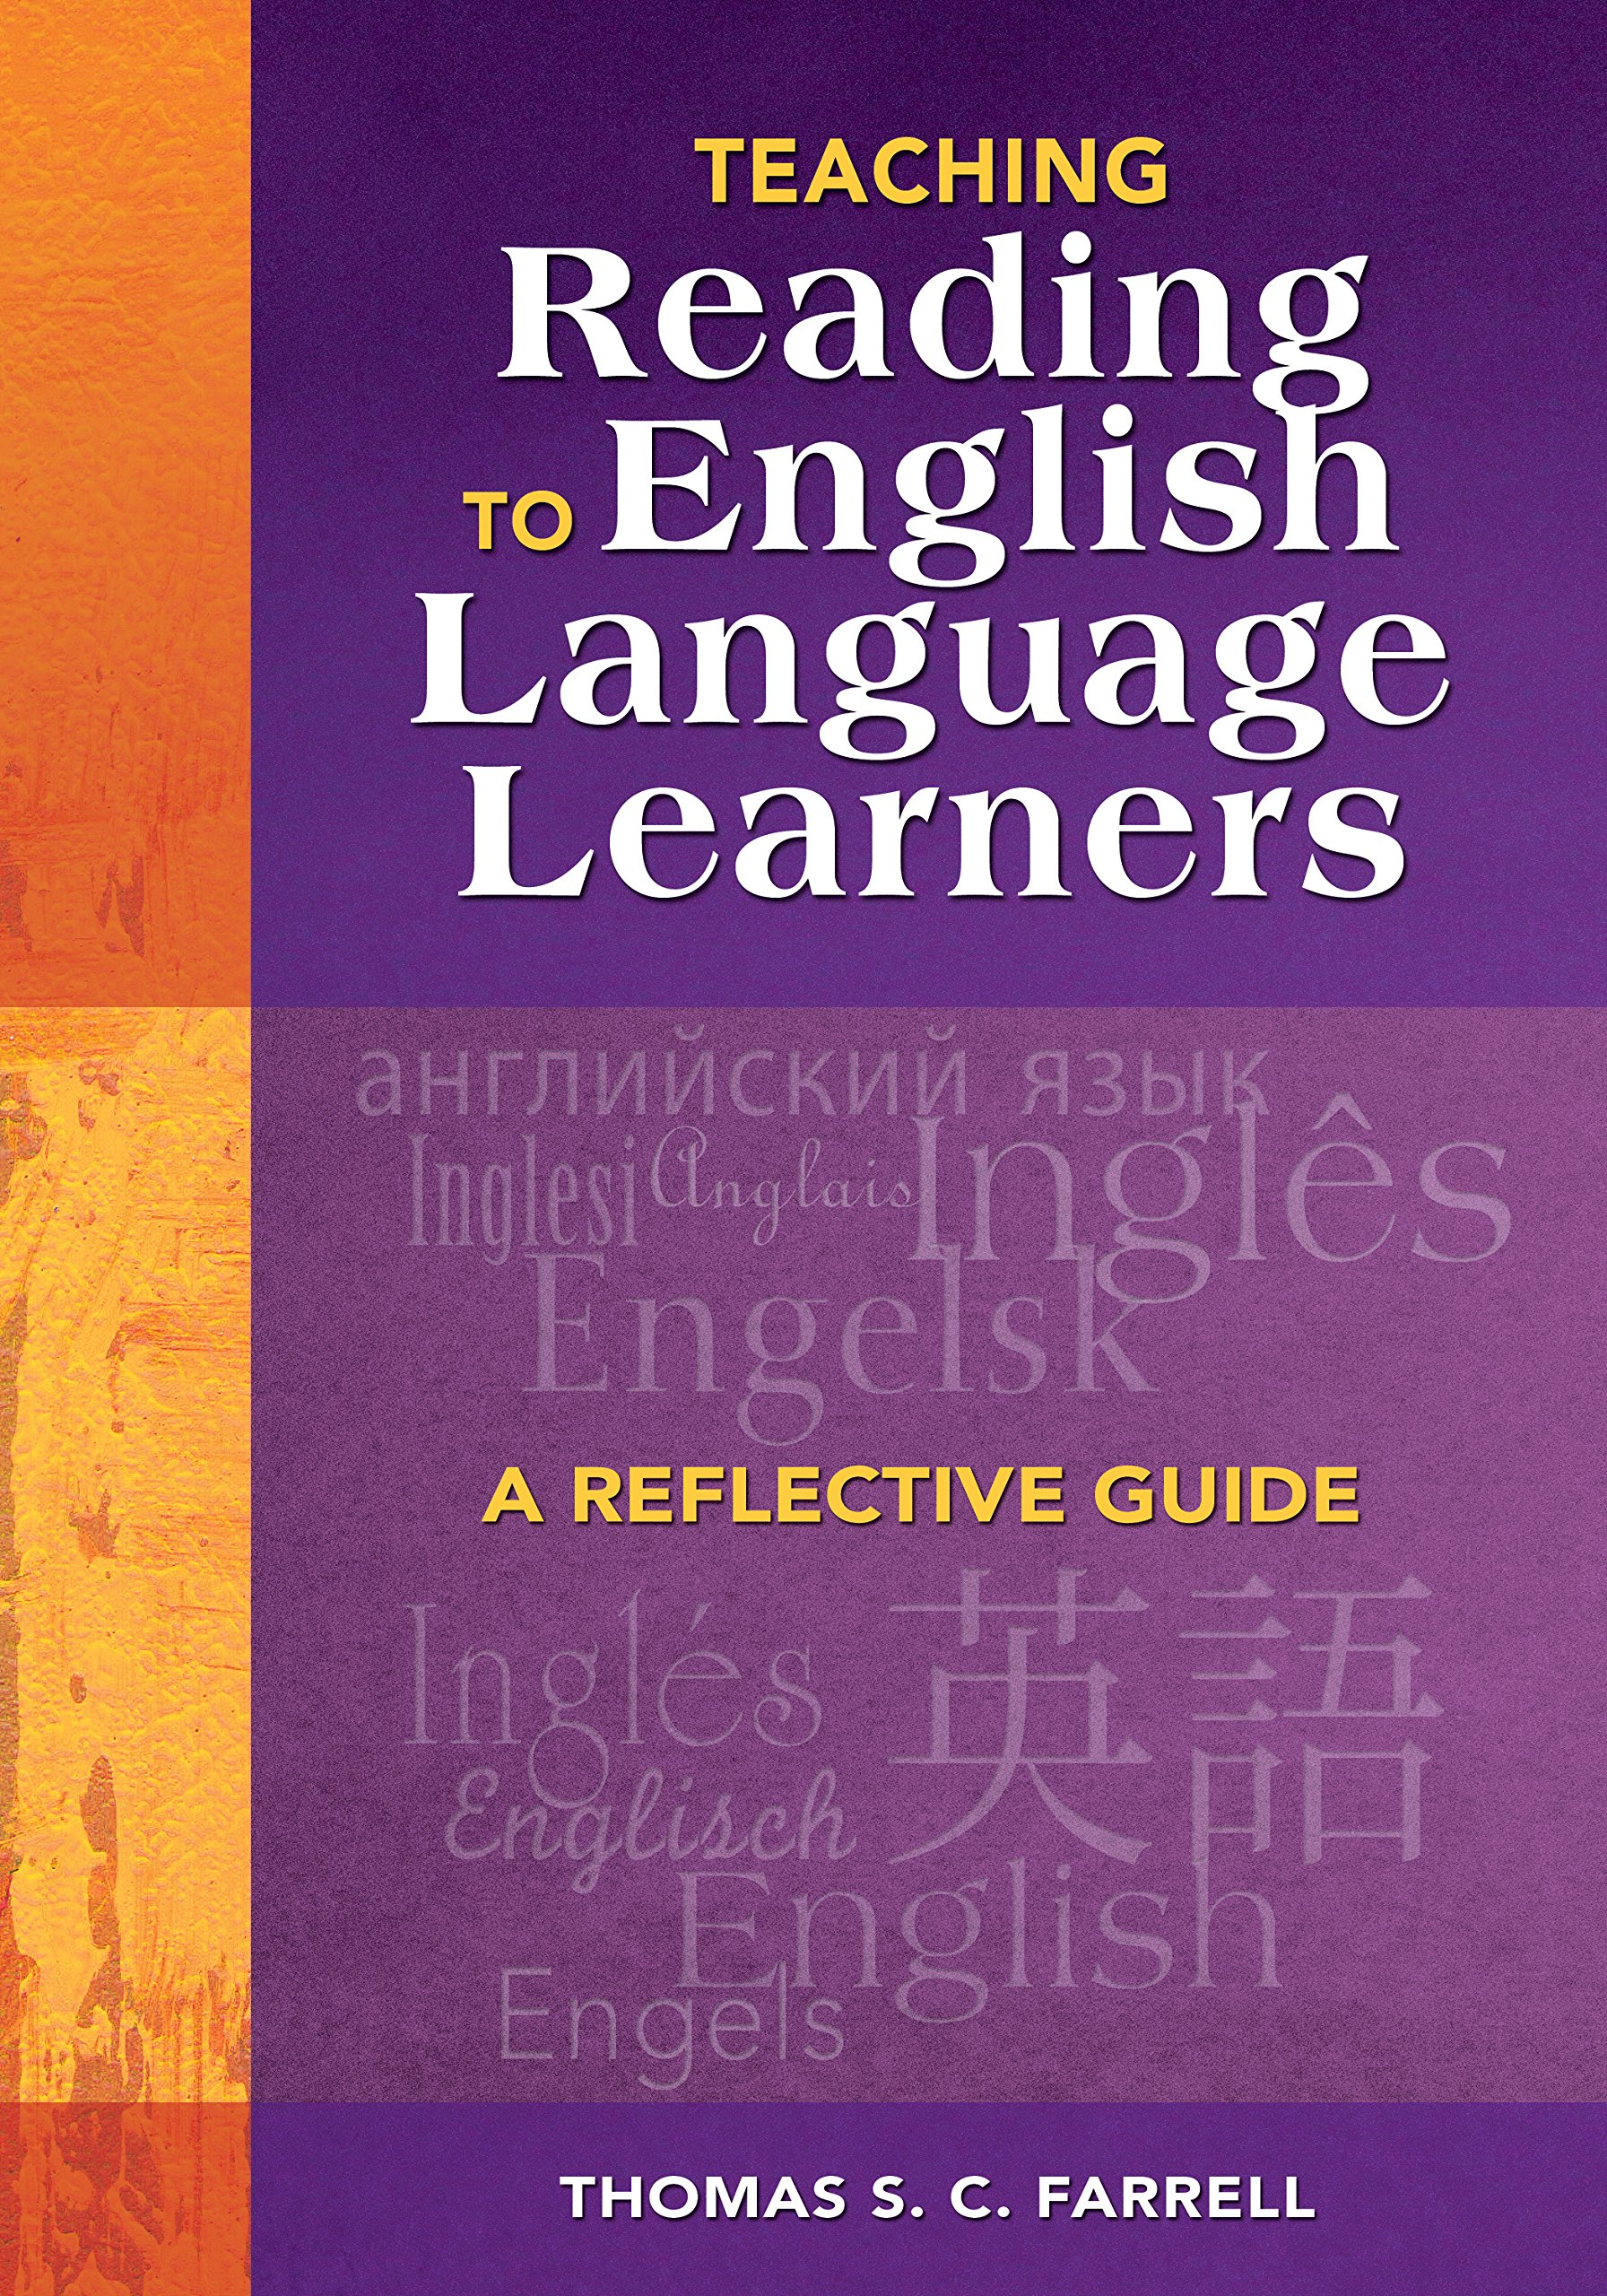 Teaching Reading to English Language Learners: A Reflective Guide